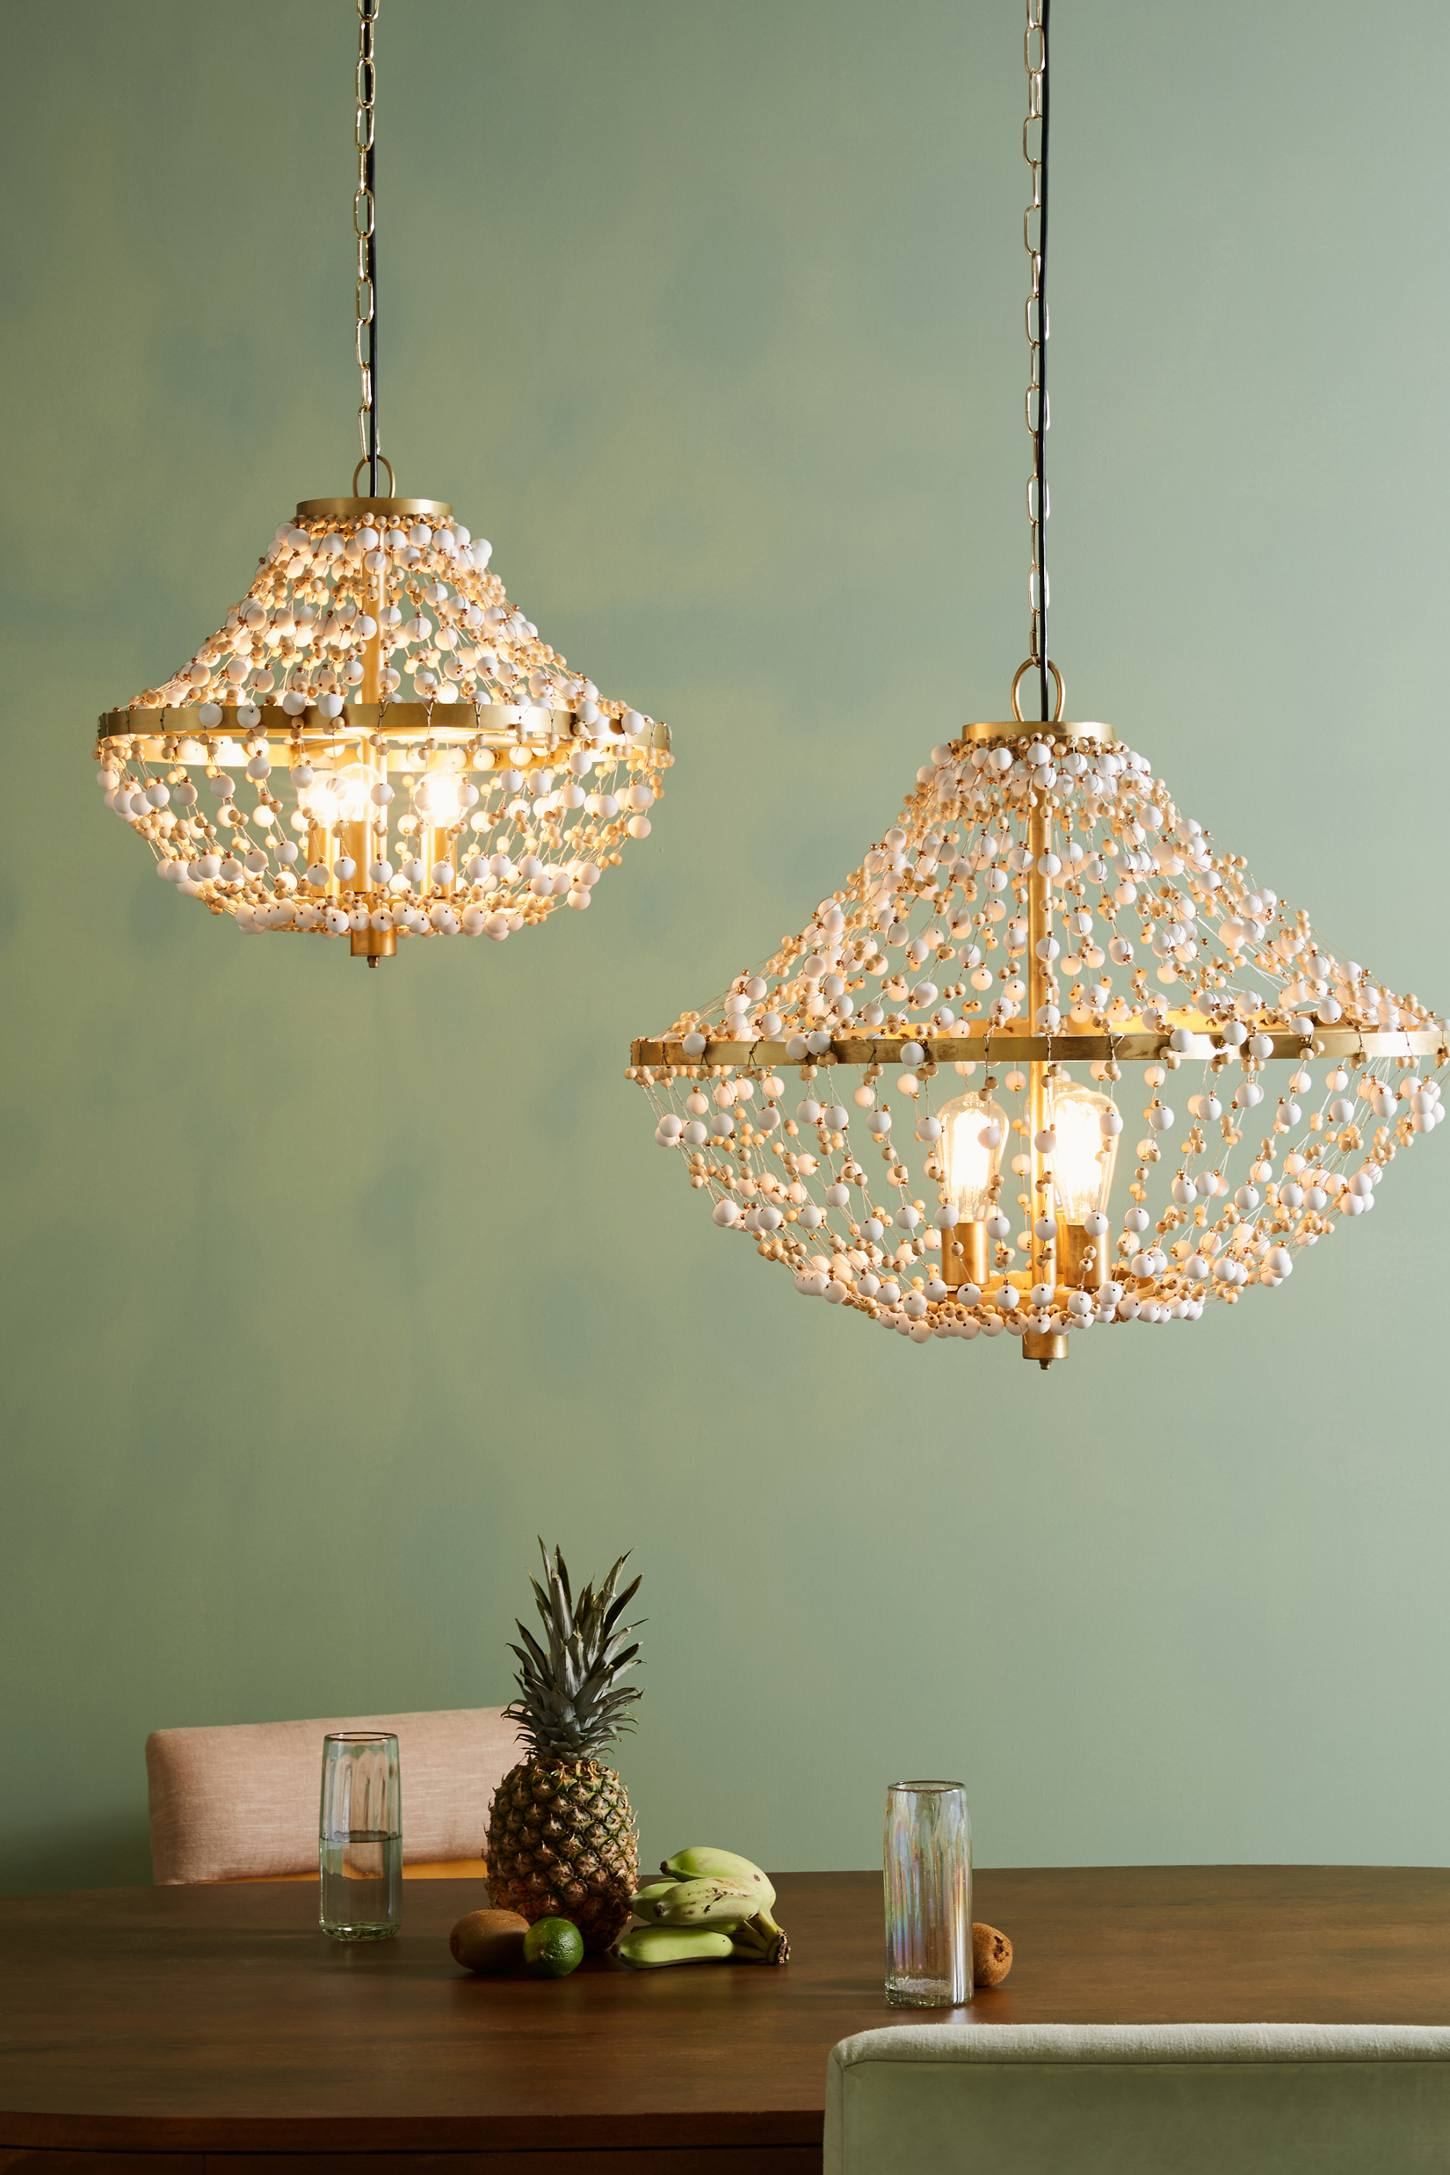 Slide View: 1: Abalorio Chandelier